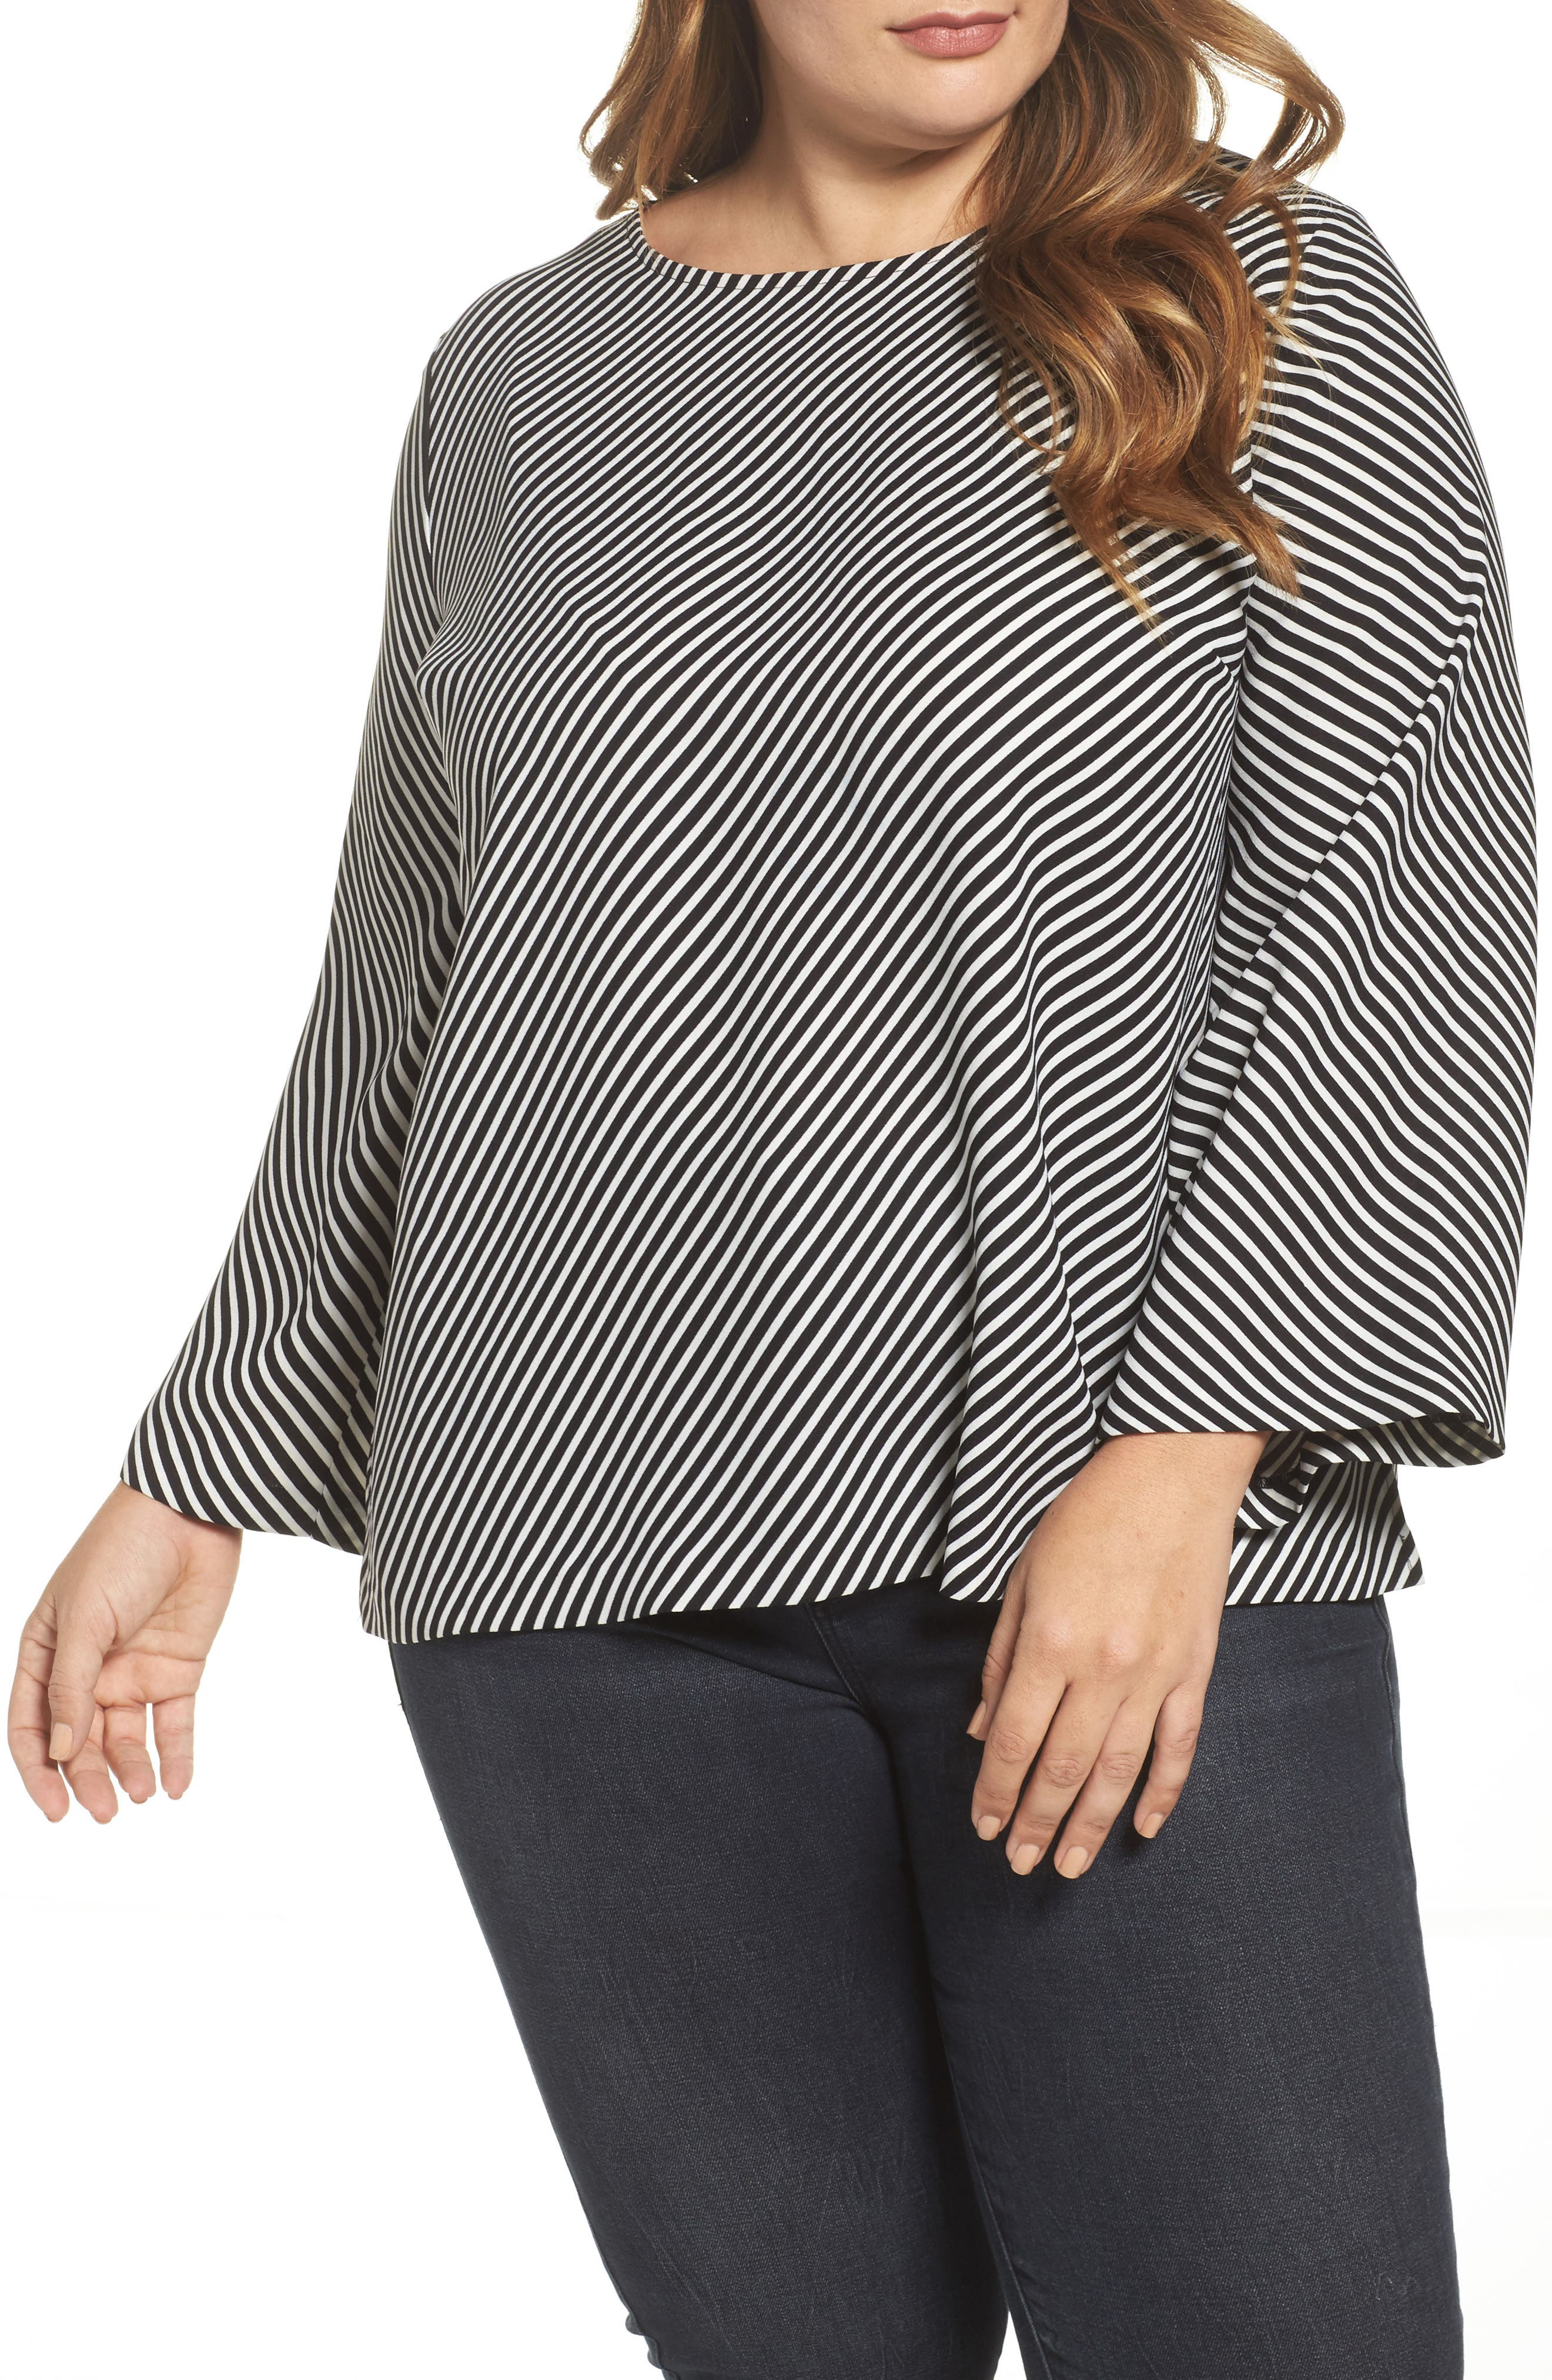 Alternate Image 1 Selected - Vince Camuto Bell Sleeve Diagonal Stripe Blouse (Plus Size)